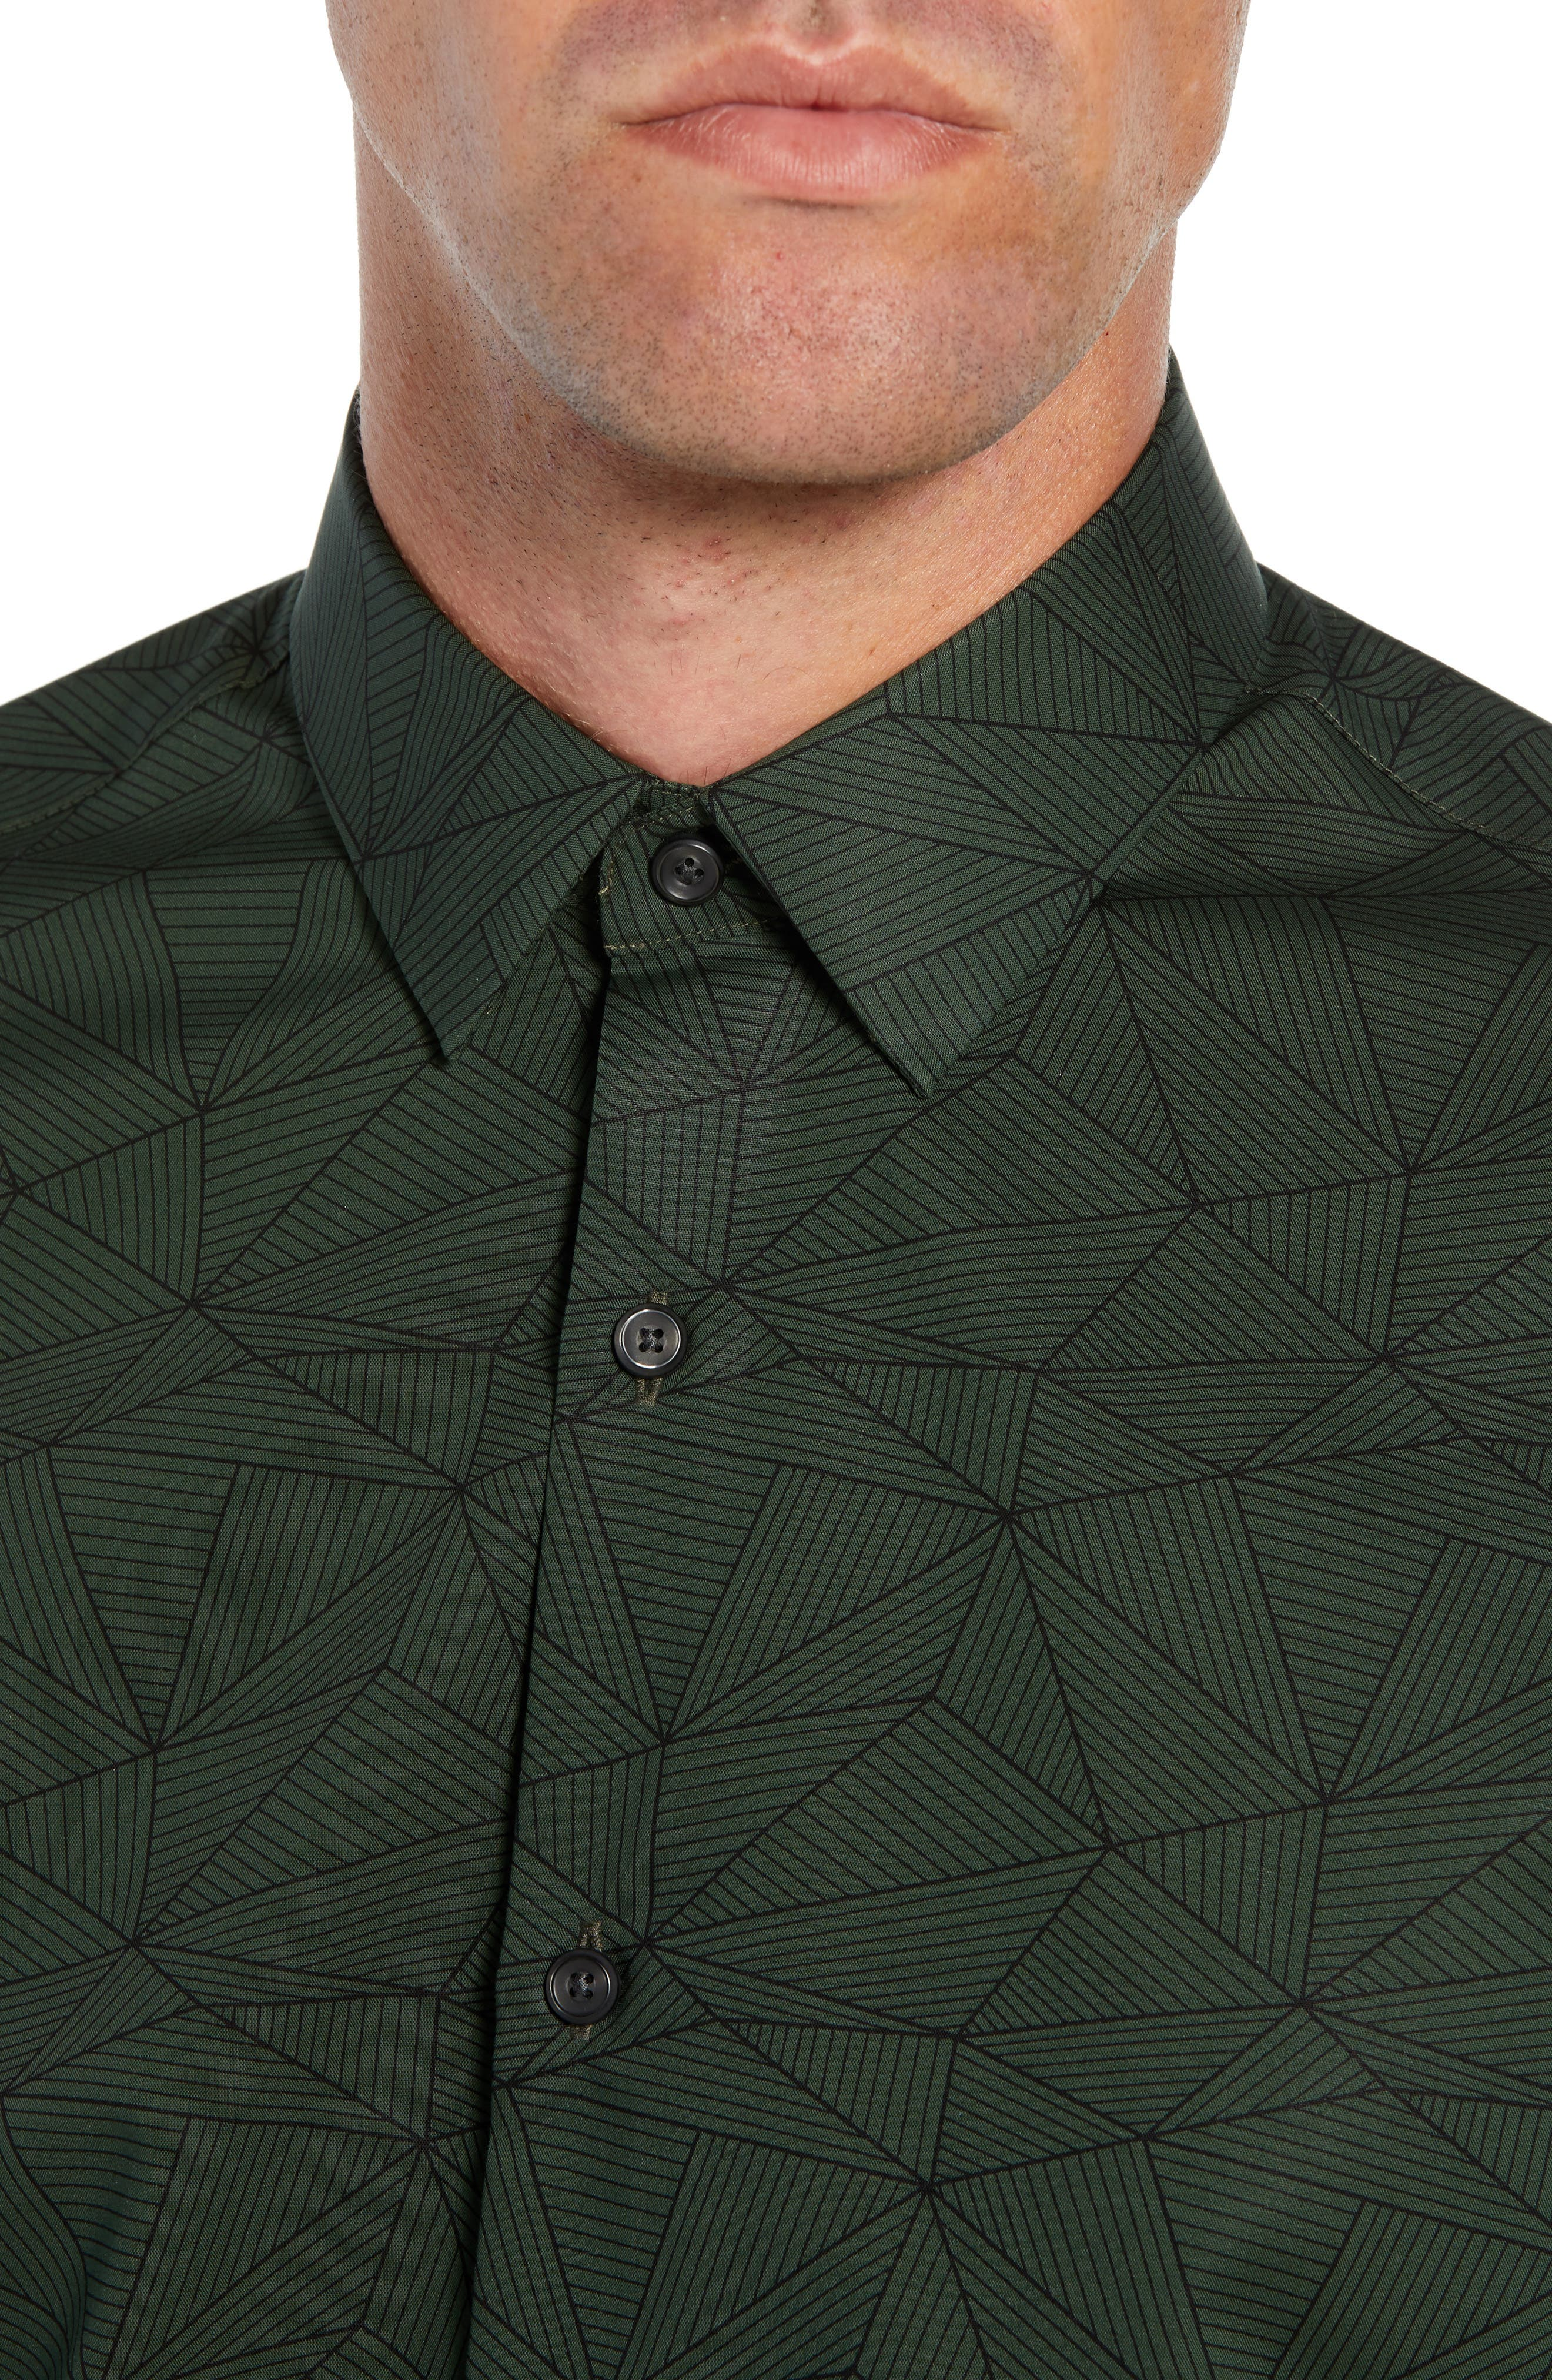 Non-Iron Geo Print Sport Shirt,                             Alternate thumbnail 2, color,                             GREEN FOREST LINEAR